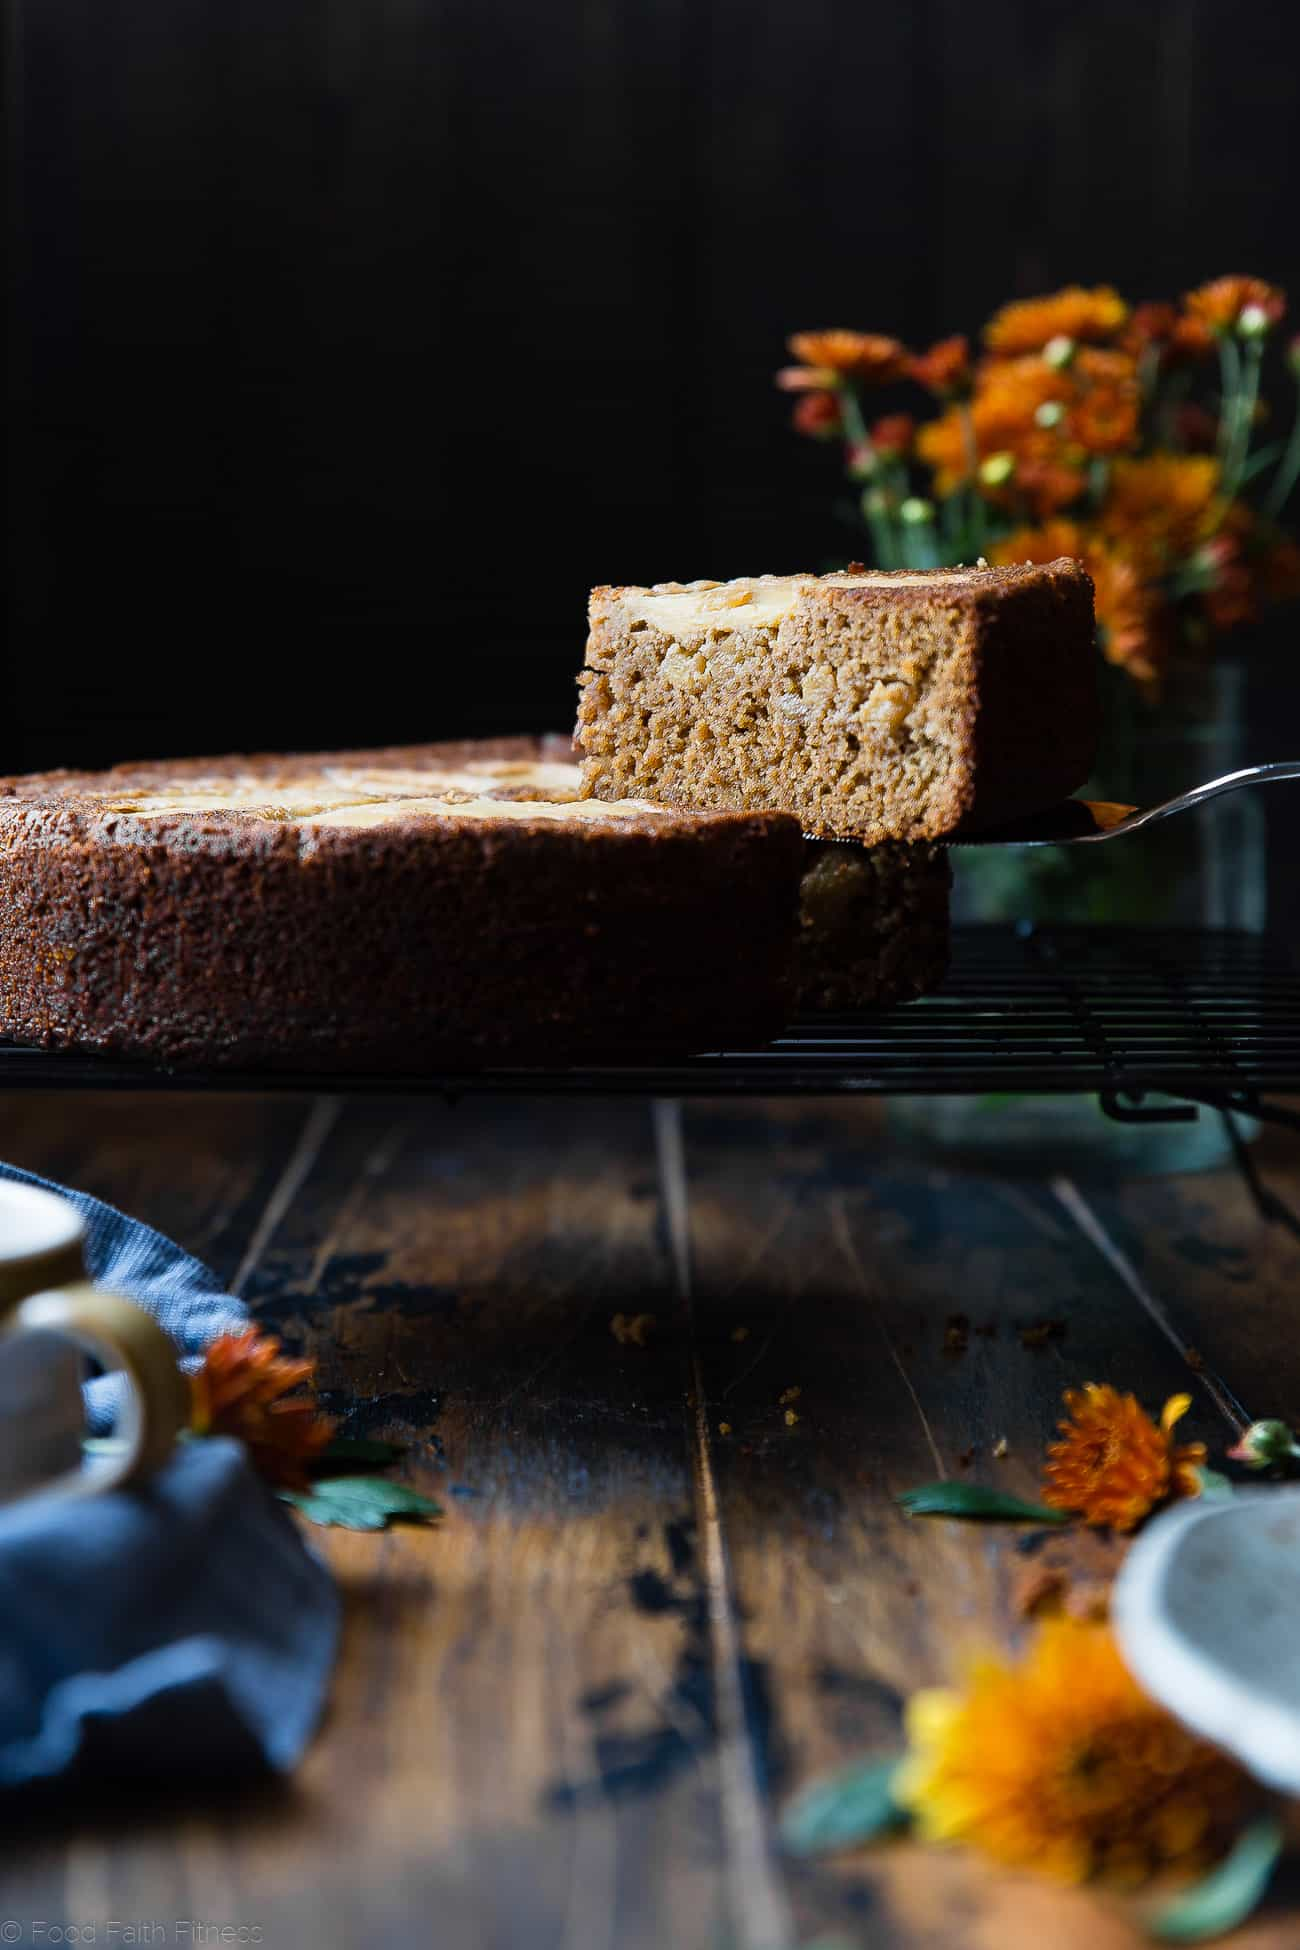 Gluten Free Apple Cinnamon Coffee Cake -This gluten free coffee cake recipe is made with almond flour, apples and naturally sweetened with coconut sugar. Its a healthy, paleo and freezer-friendly breakfast that you will never believe is butter and oil free! | Foodfaithfitness.com | @FoodFaithFit